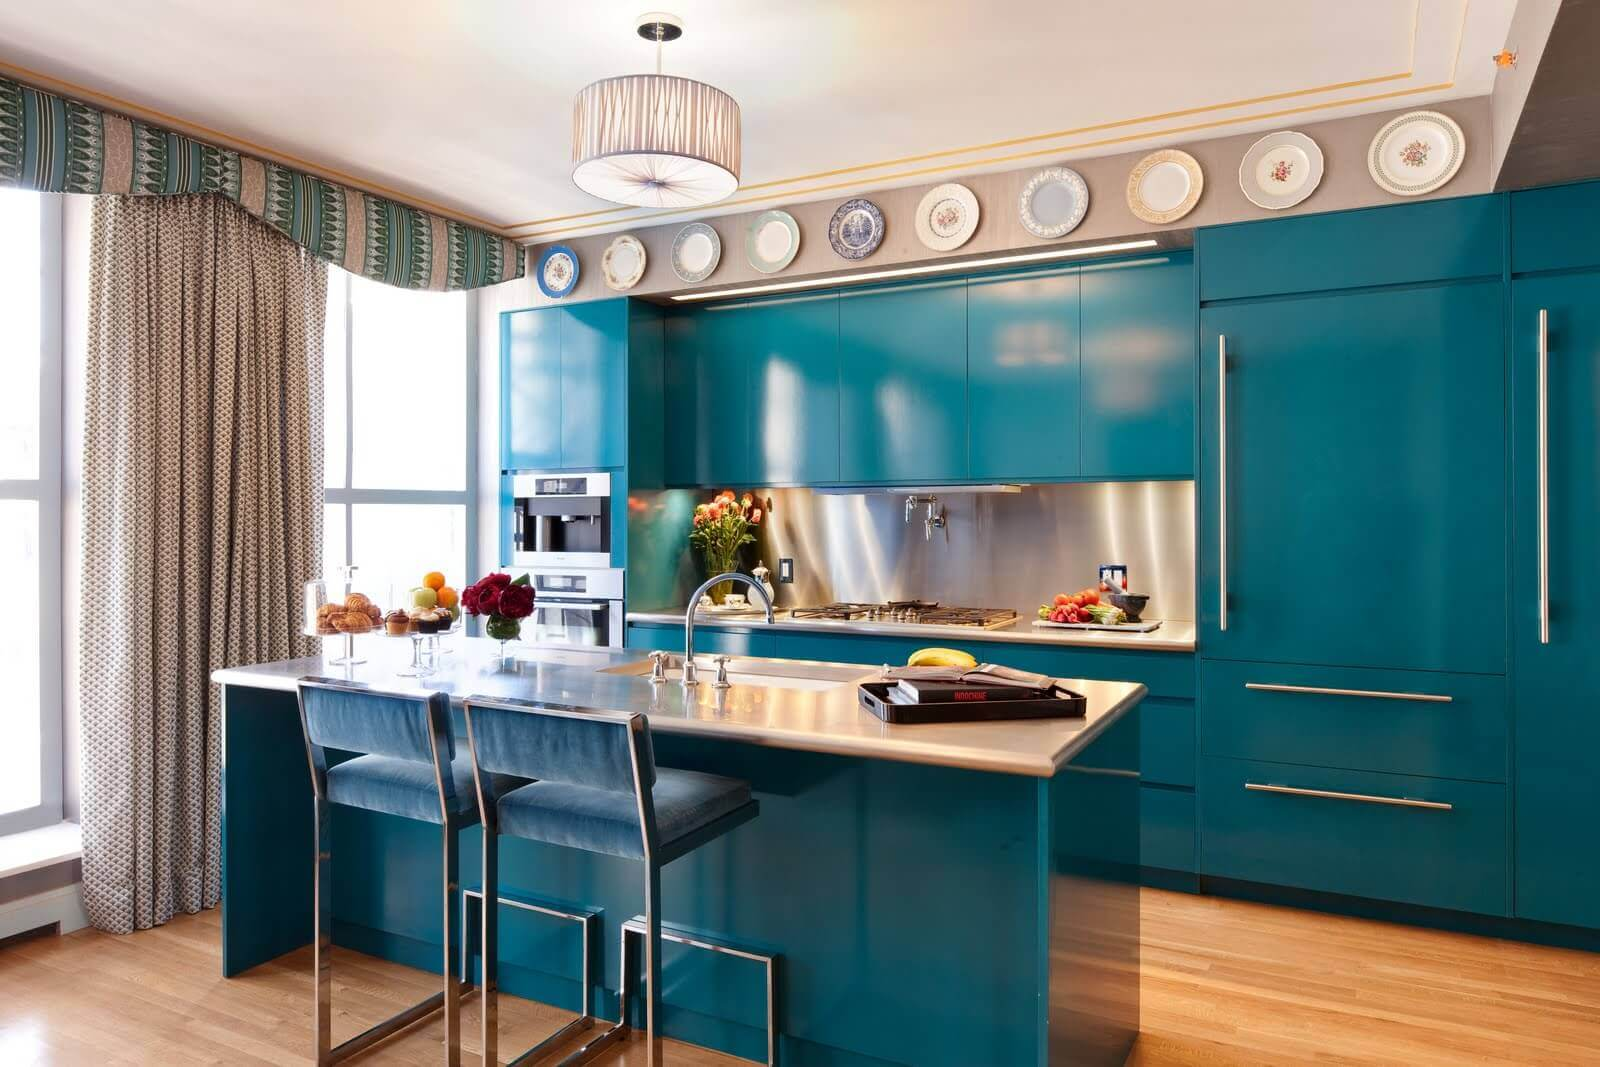 Contemporary blue kitchen cabinets, and blue bar stools give this kitchen a bright look and feel. The brown wooden floor anchors the otherwise light coloured room and a free standing blue island with granite block top adds extra workspace